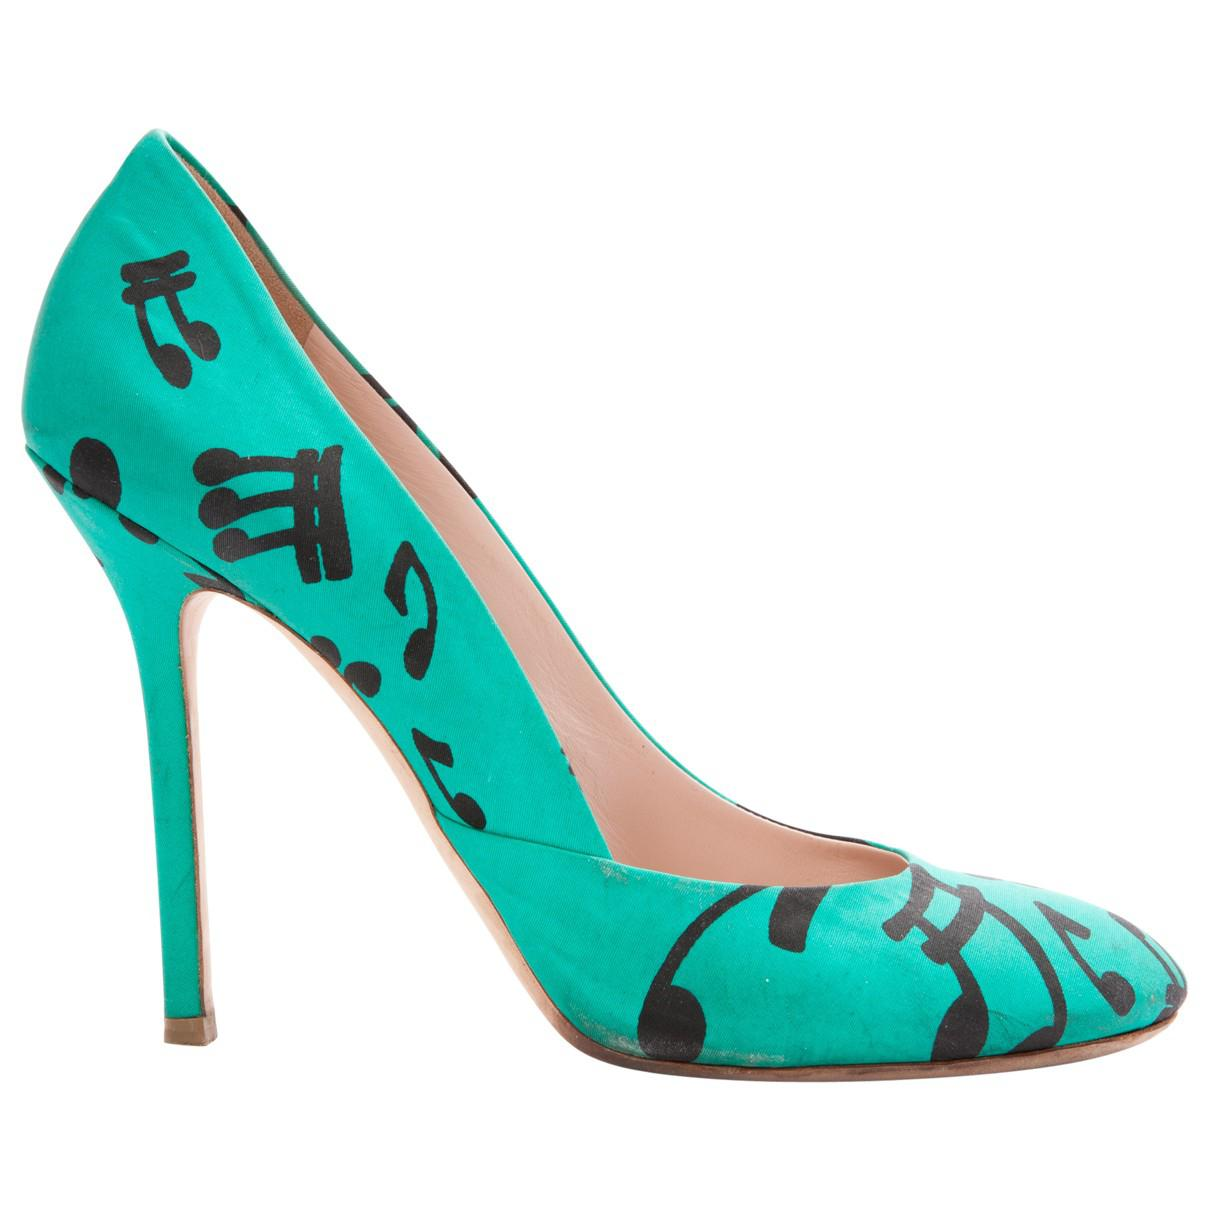 Pre-owned - Cloth heels Miu Miu For Sale The Cheapest Limited Edition Cheap Price Fast Delivery Cheap Online Visit Online nPquXLx